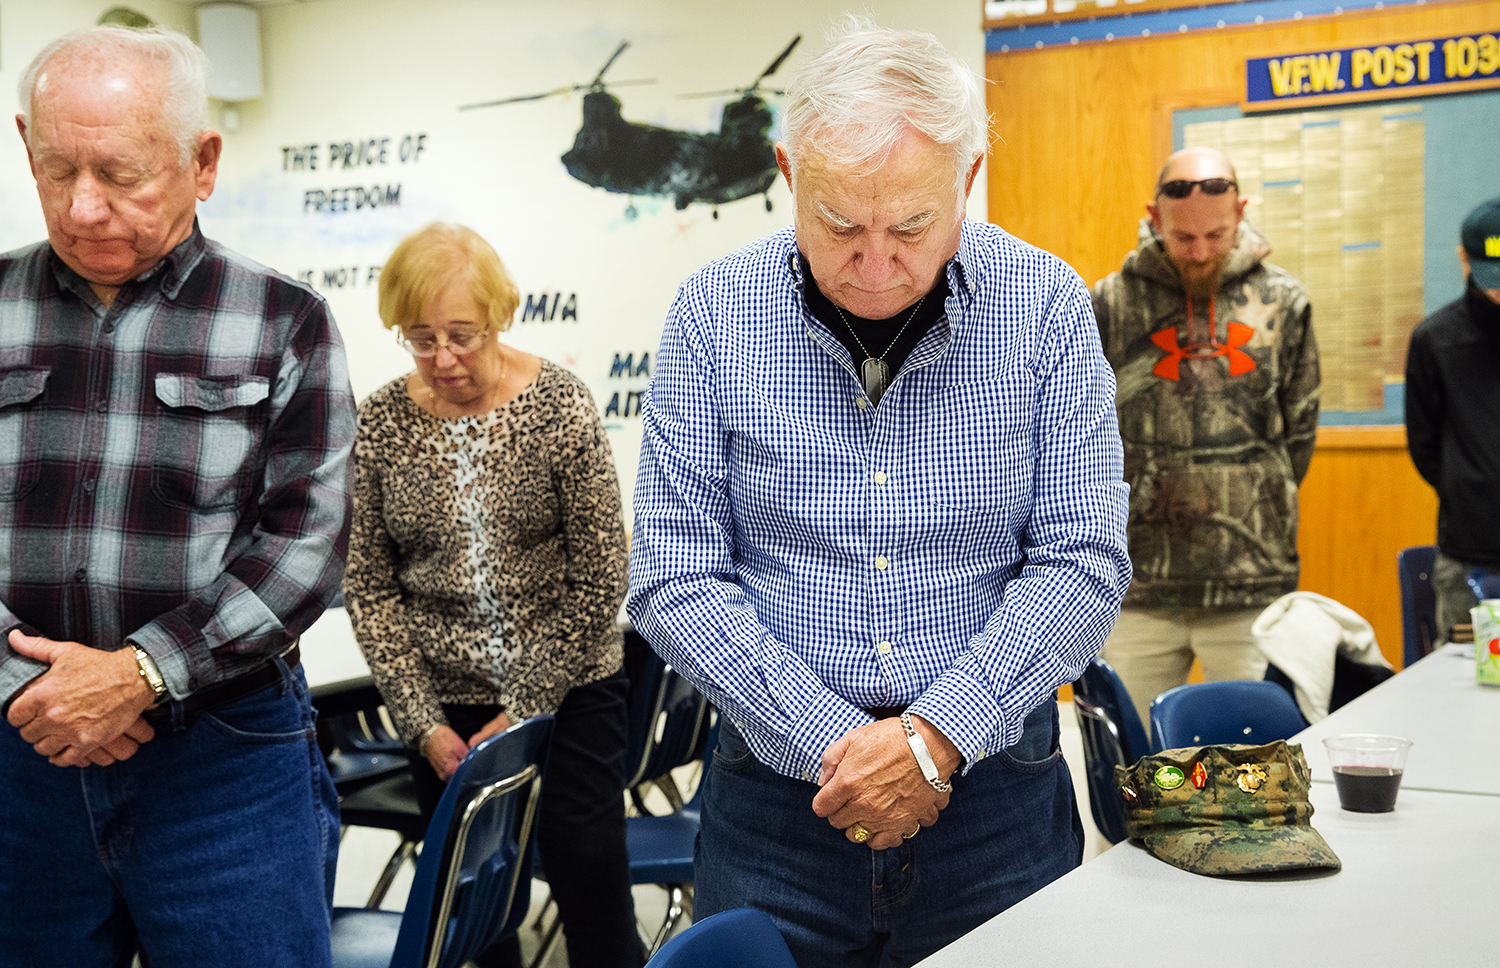 After observing a moment of silence in honor of military members serving overseas, Lee Williams, left, and William Demaree bow their heads in prayer before a Thanksgiving meal at the Northenders VFW Post 10302 Thursday, Nov. 22, 2018. The post opens the doors to anyone that would like to eat a Thanksgiving meal during the annual event. [Ted Schurter/The State Journal-Register]